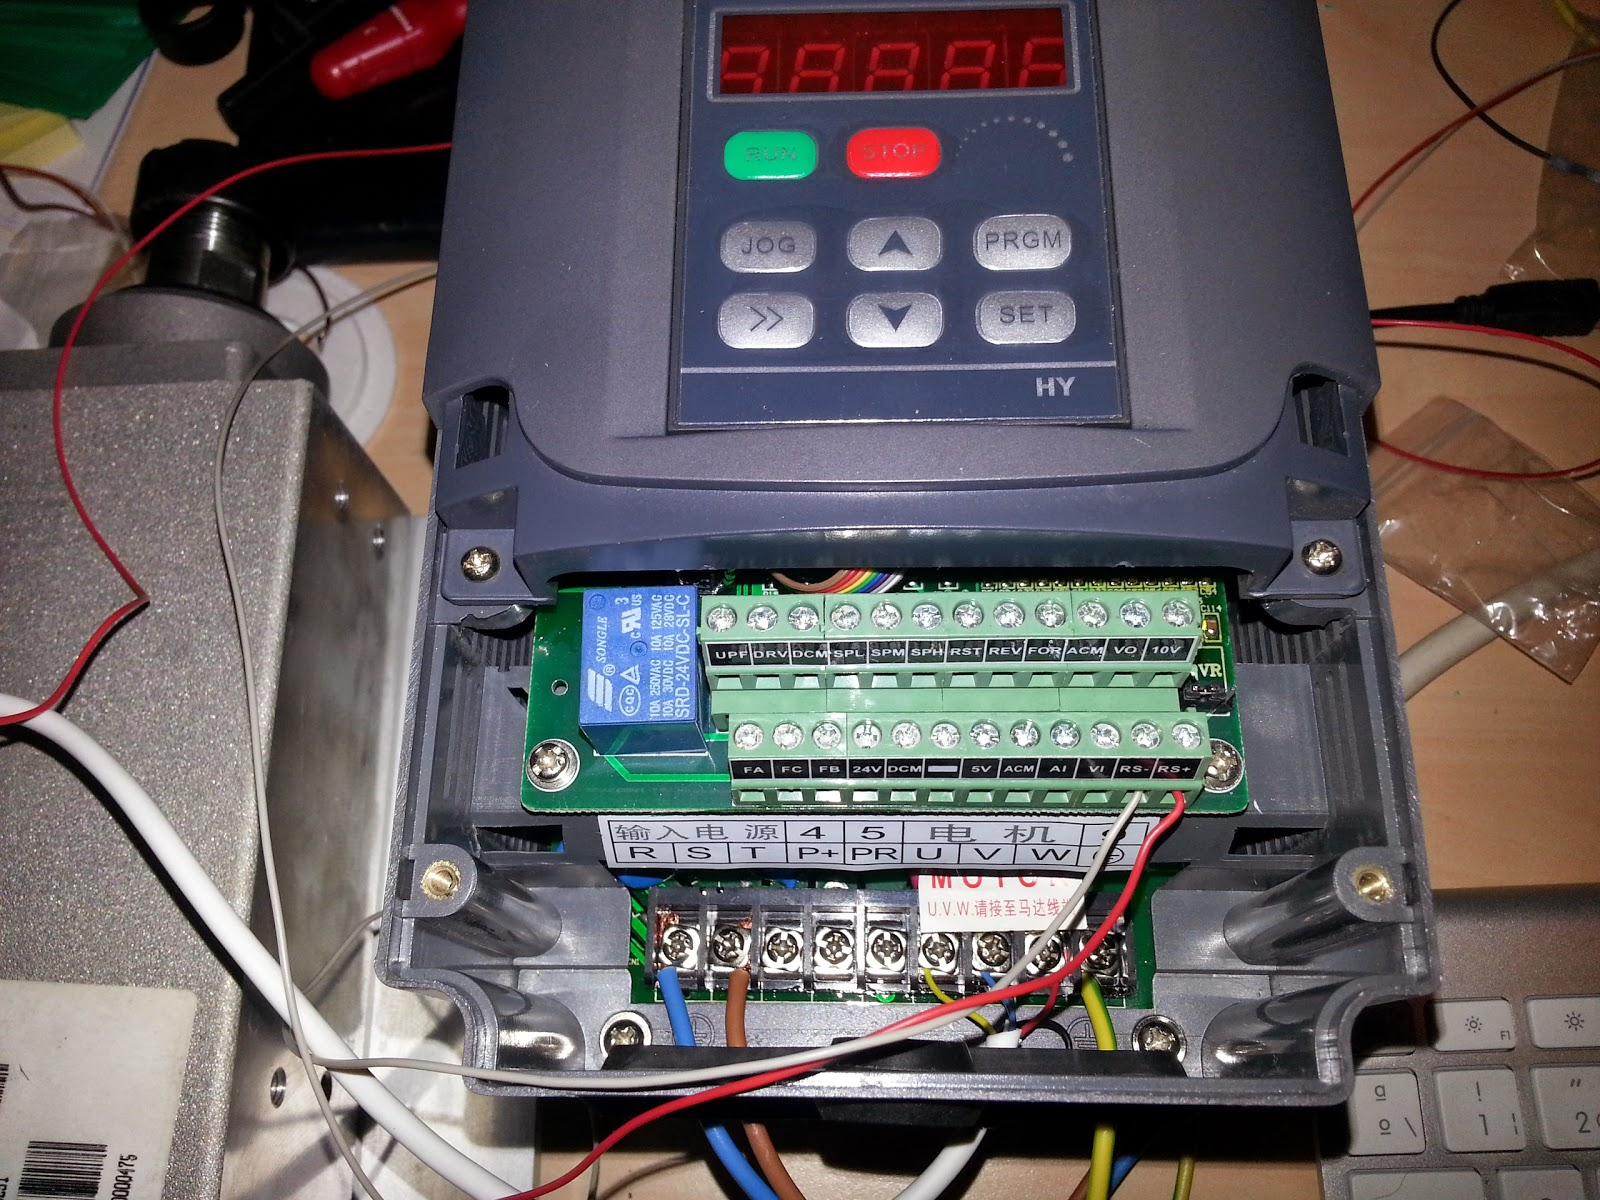 medium resolution of i am using a popular i mean cheap chinese vfd and though the reference manual is not great i could see there is a built in rs 485 port i usually control